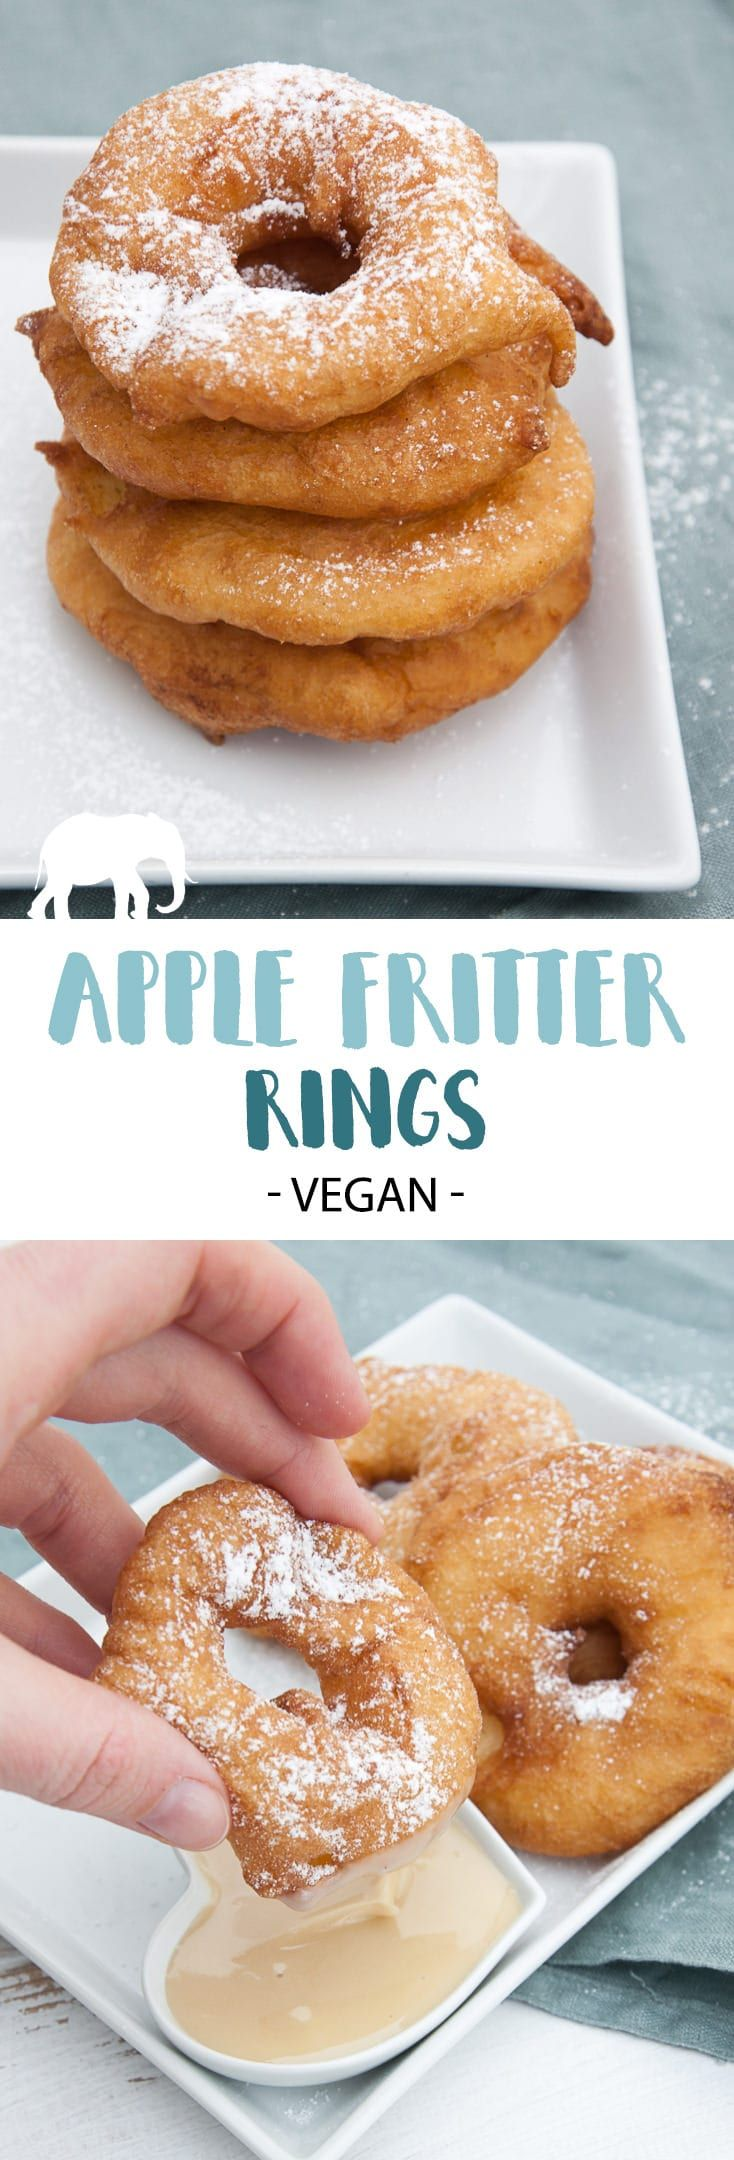 Vegan Apple Fritter Rings | #vegan #apple #fritter #dessert #sweet via @elephantasticv